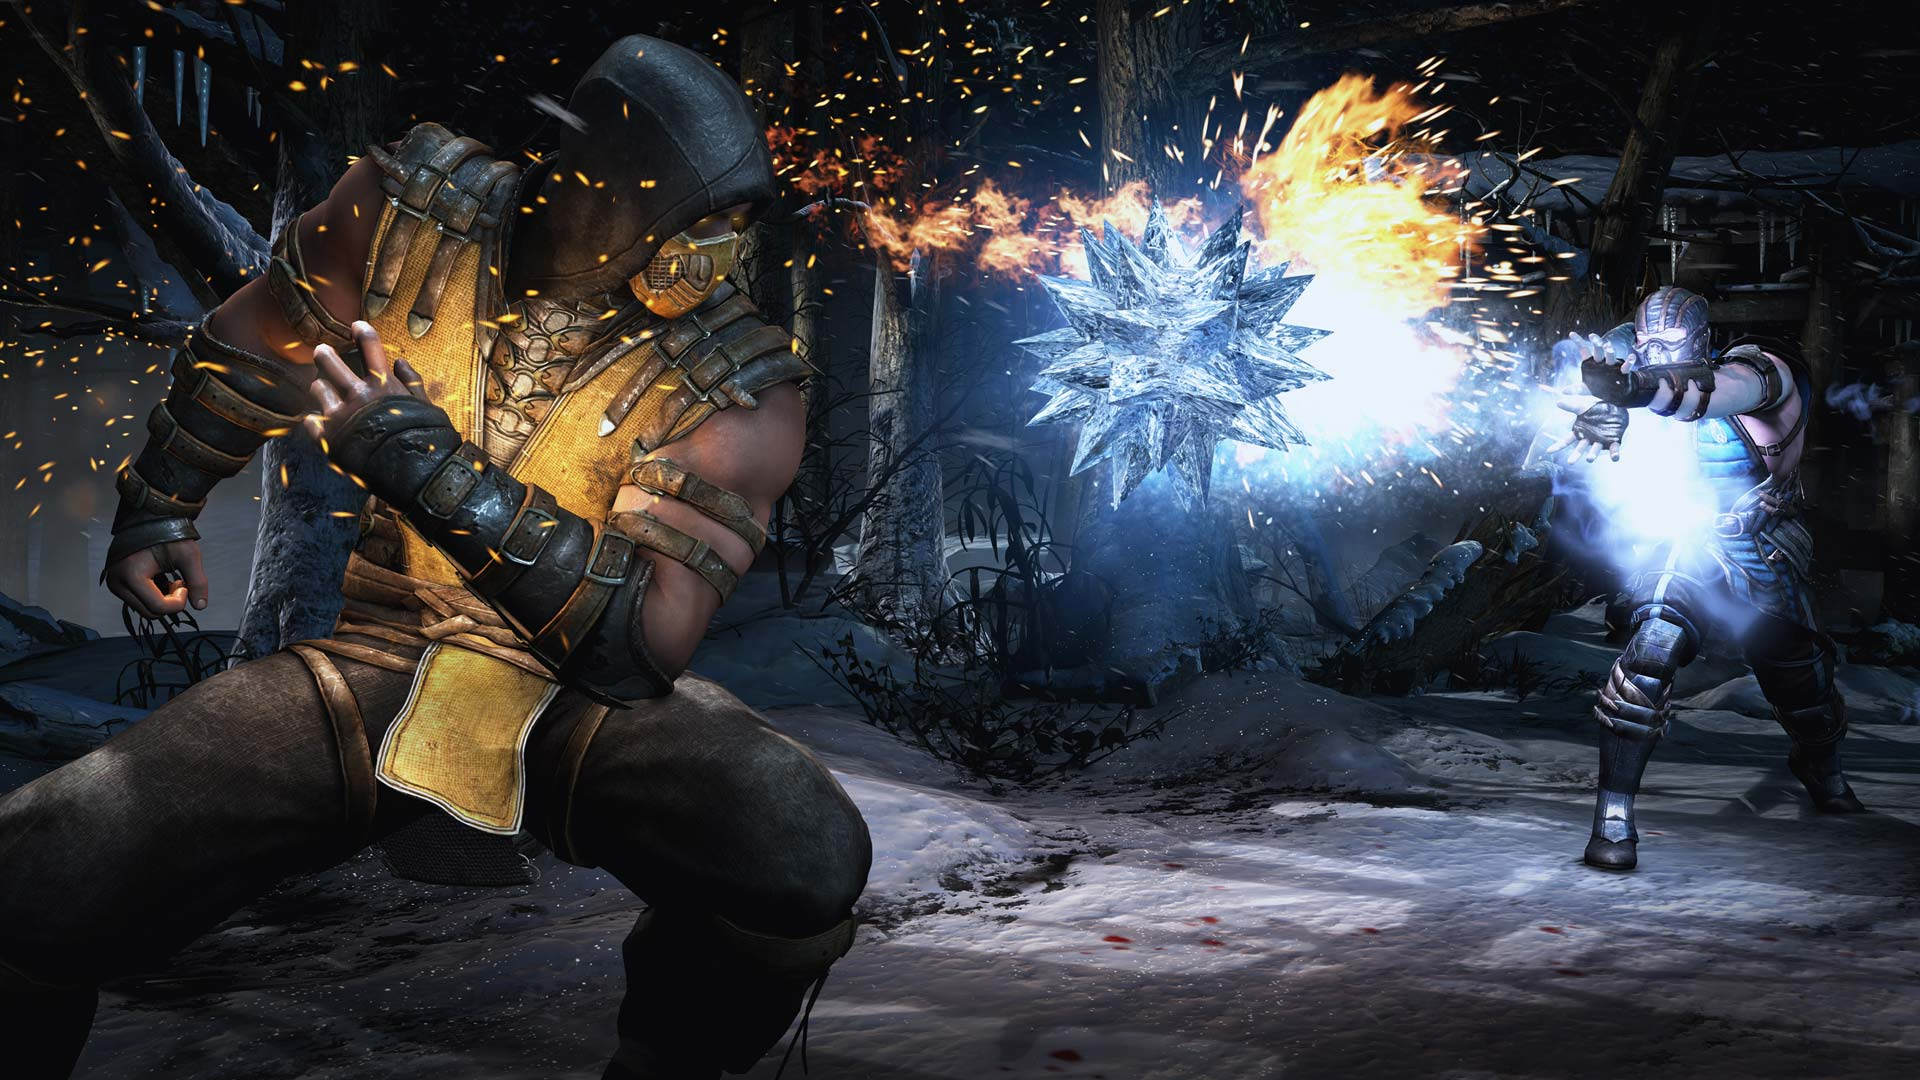 Mortal Kombat X ESPAÑOL PC Full PROPER + Update v20150908 (RELOADED) + REPACK 7 DVD5 (JPW) 8